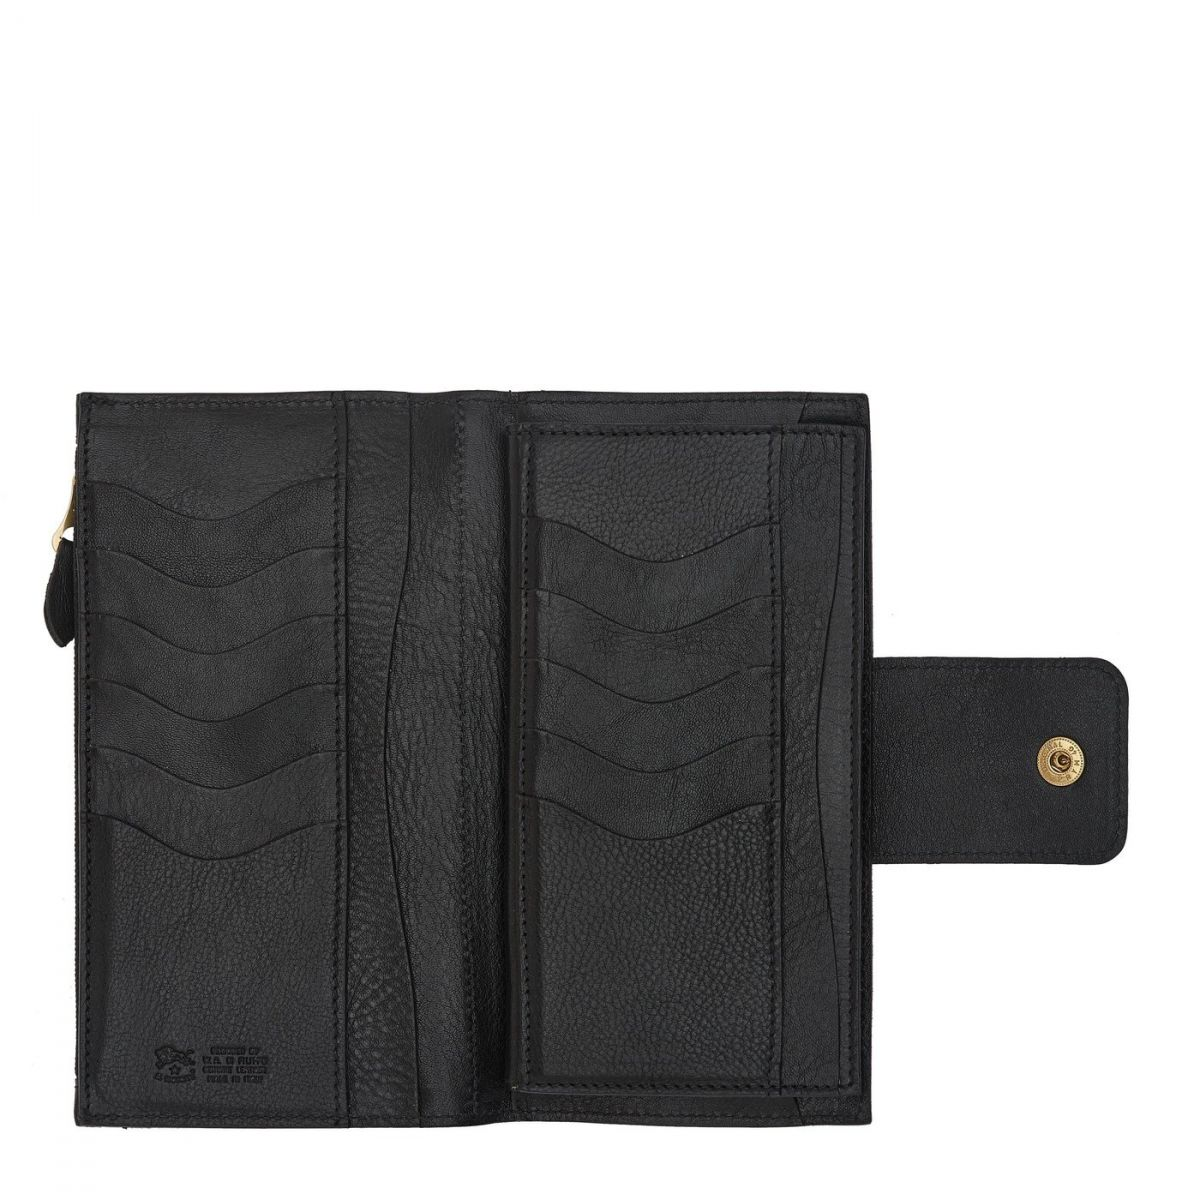 Women's Continental Wallet  in Cowhide Double Leather SCW007 color Black | Details